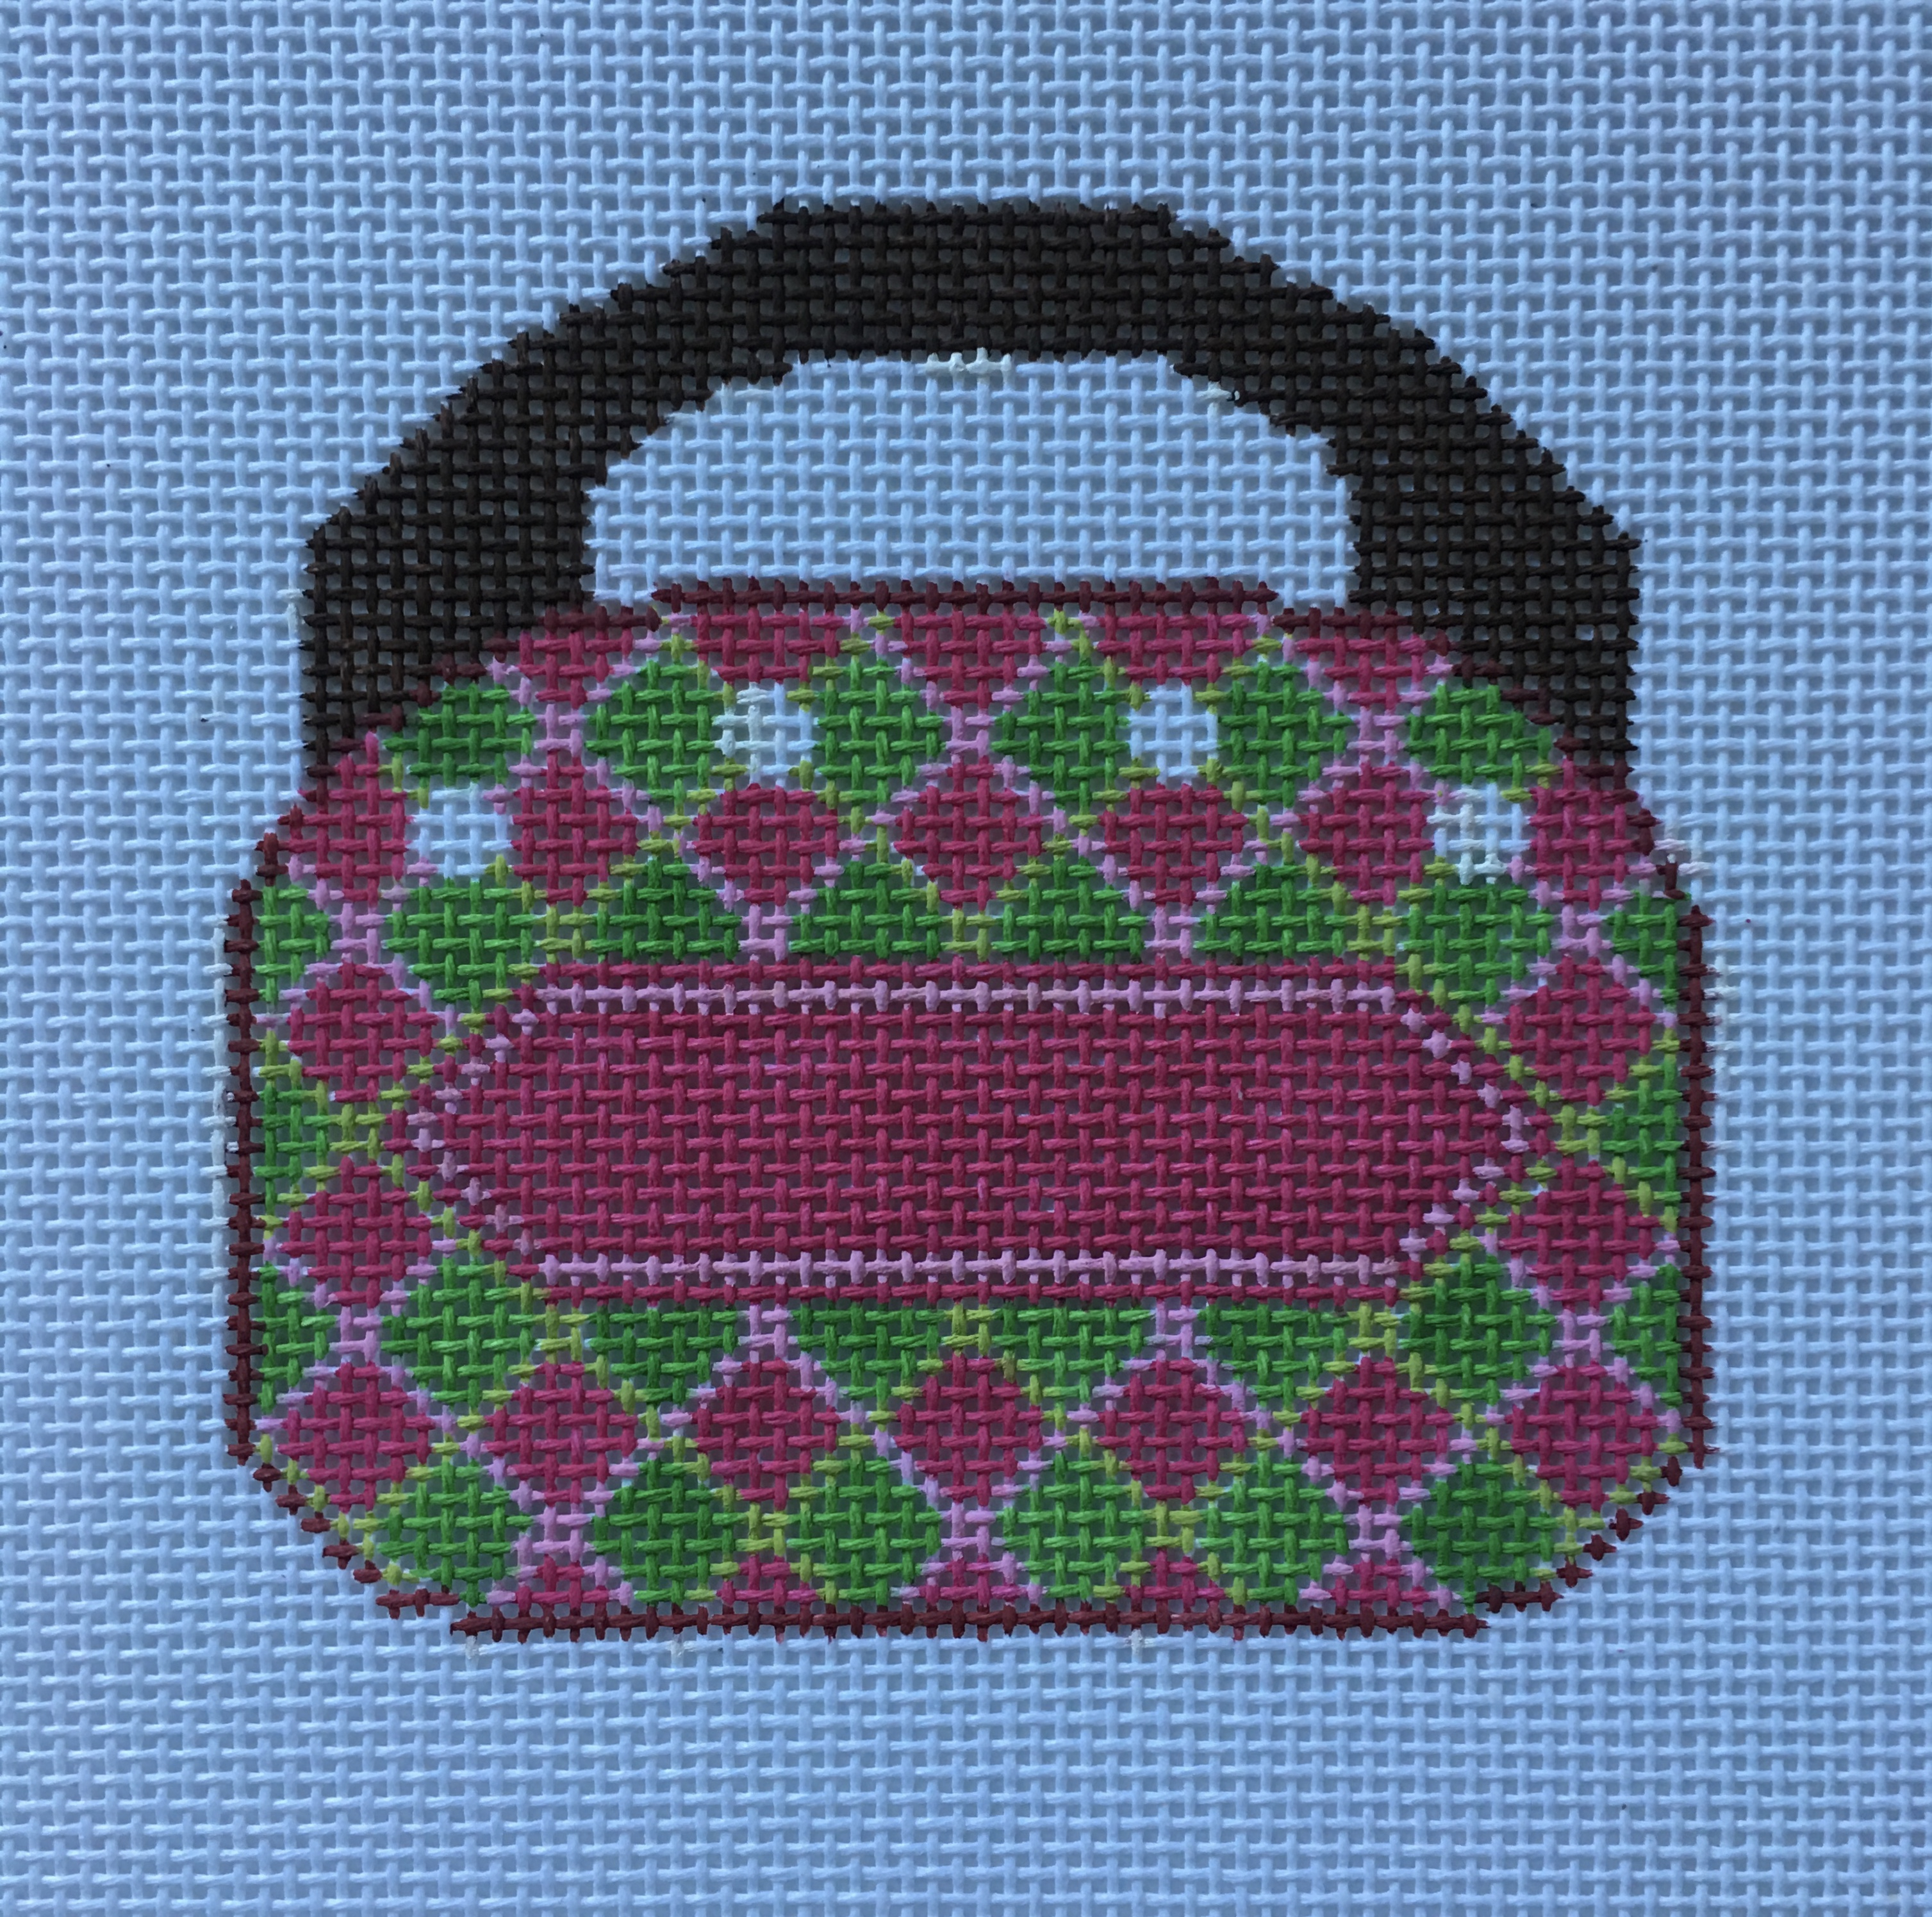 Two Sisters Bermuda Bag - Argyle on 18 mesh